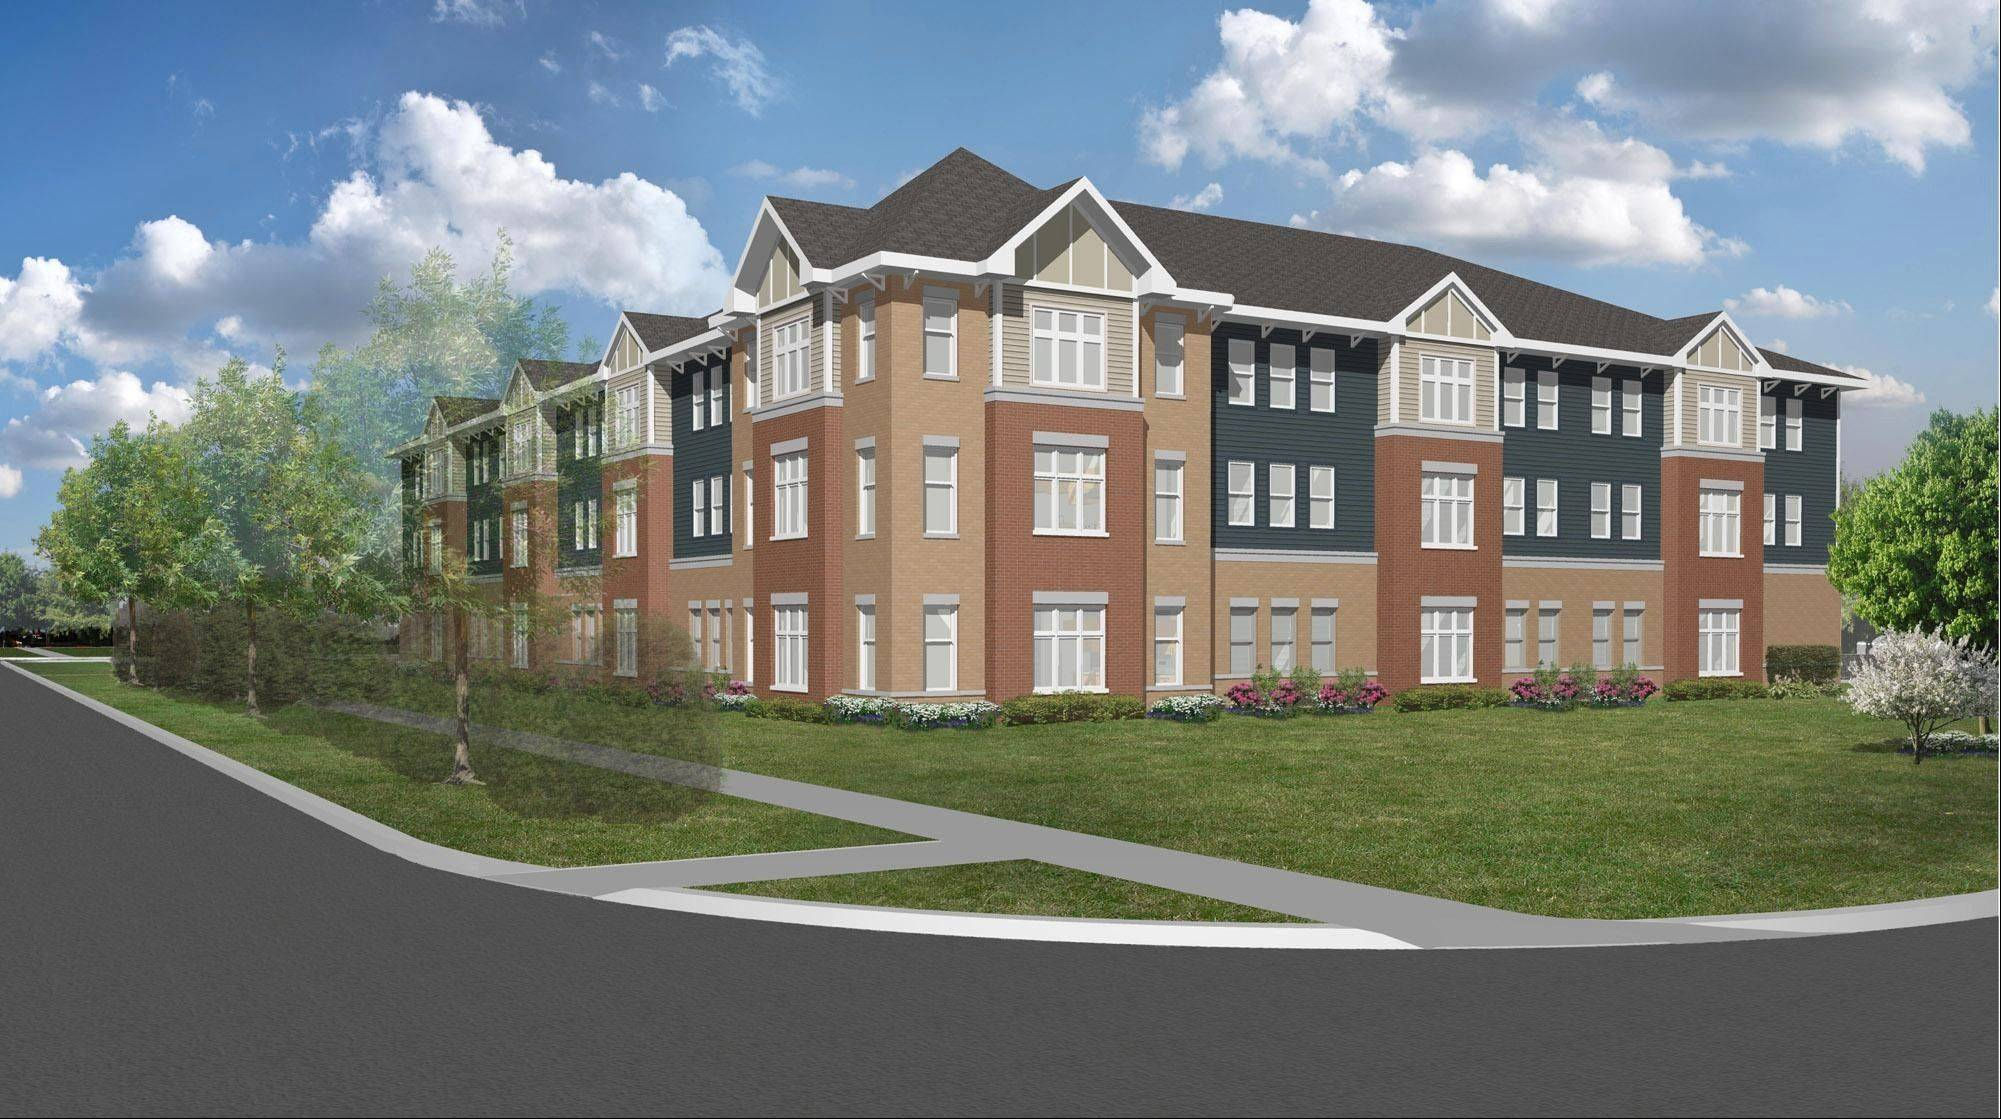 Palatine housing project faces first big test Tuesday